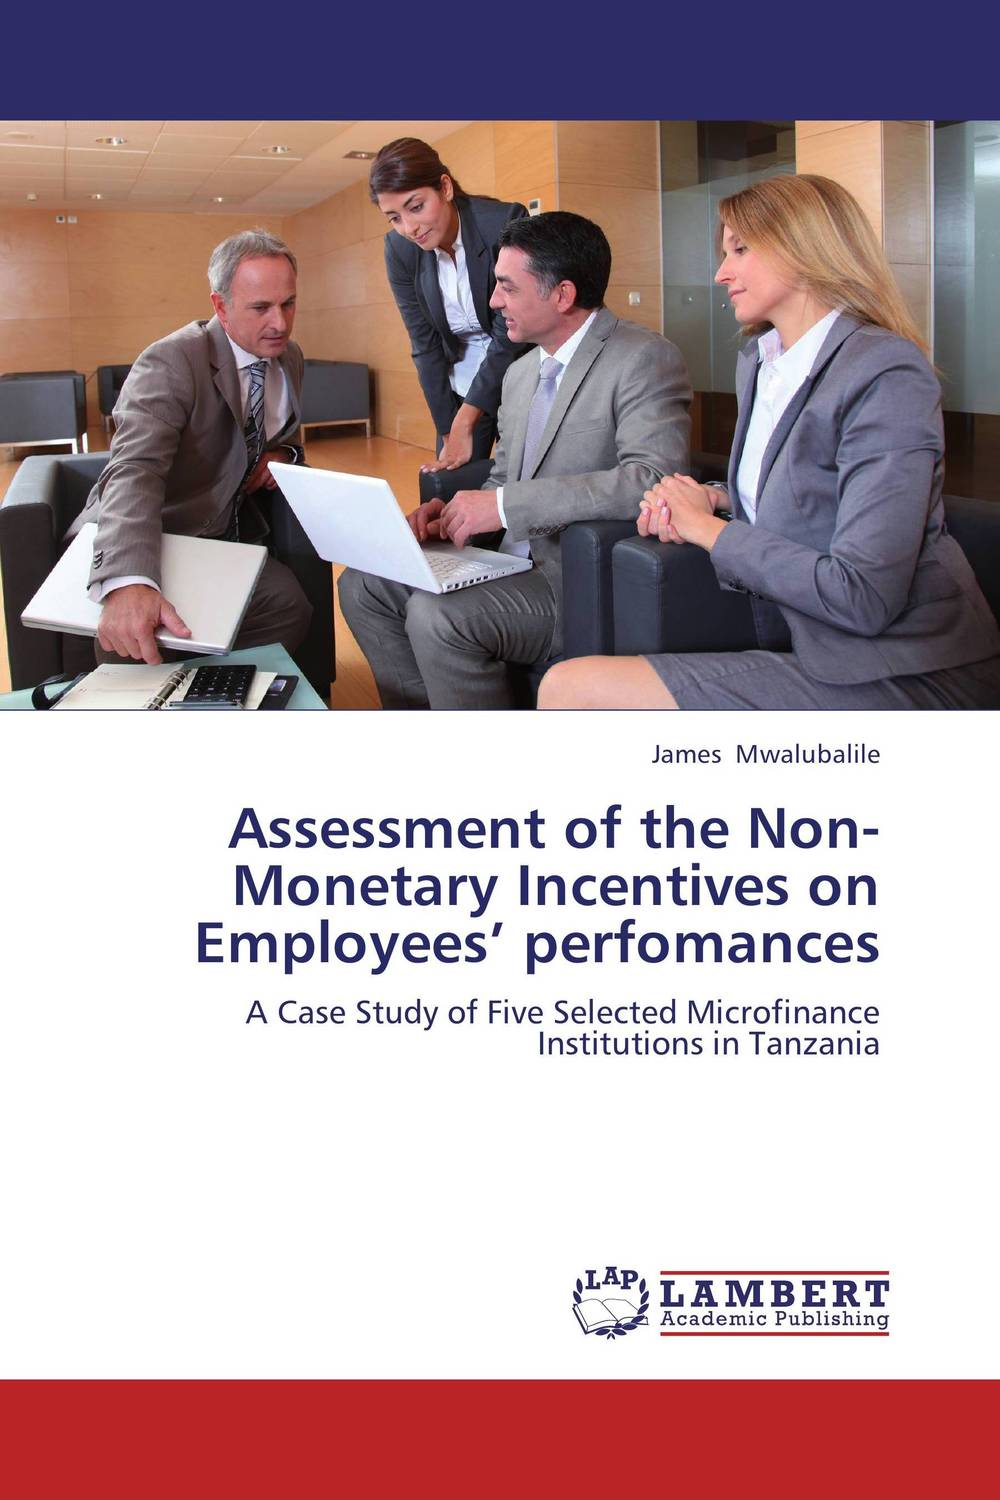 Assessment of the Non-Monetary Incentives on Employees' perfomances not working